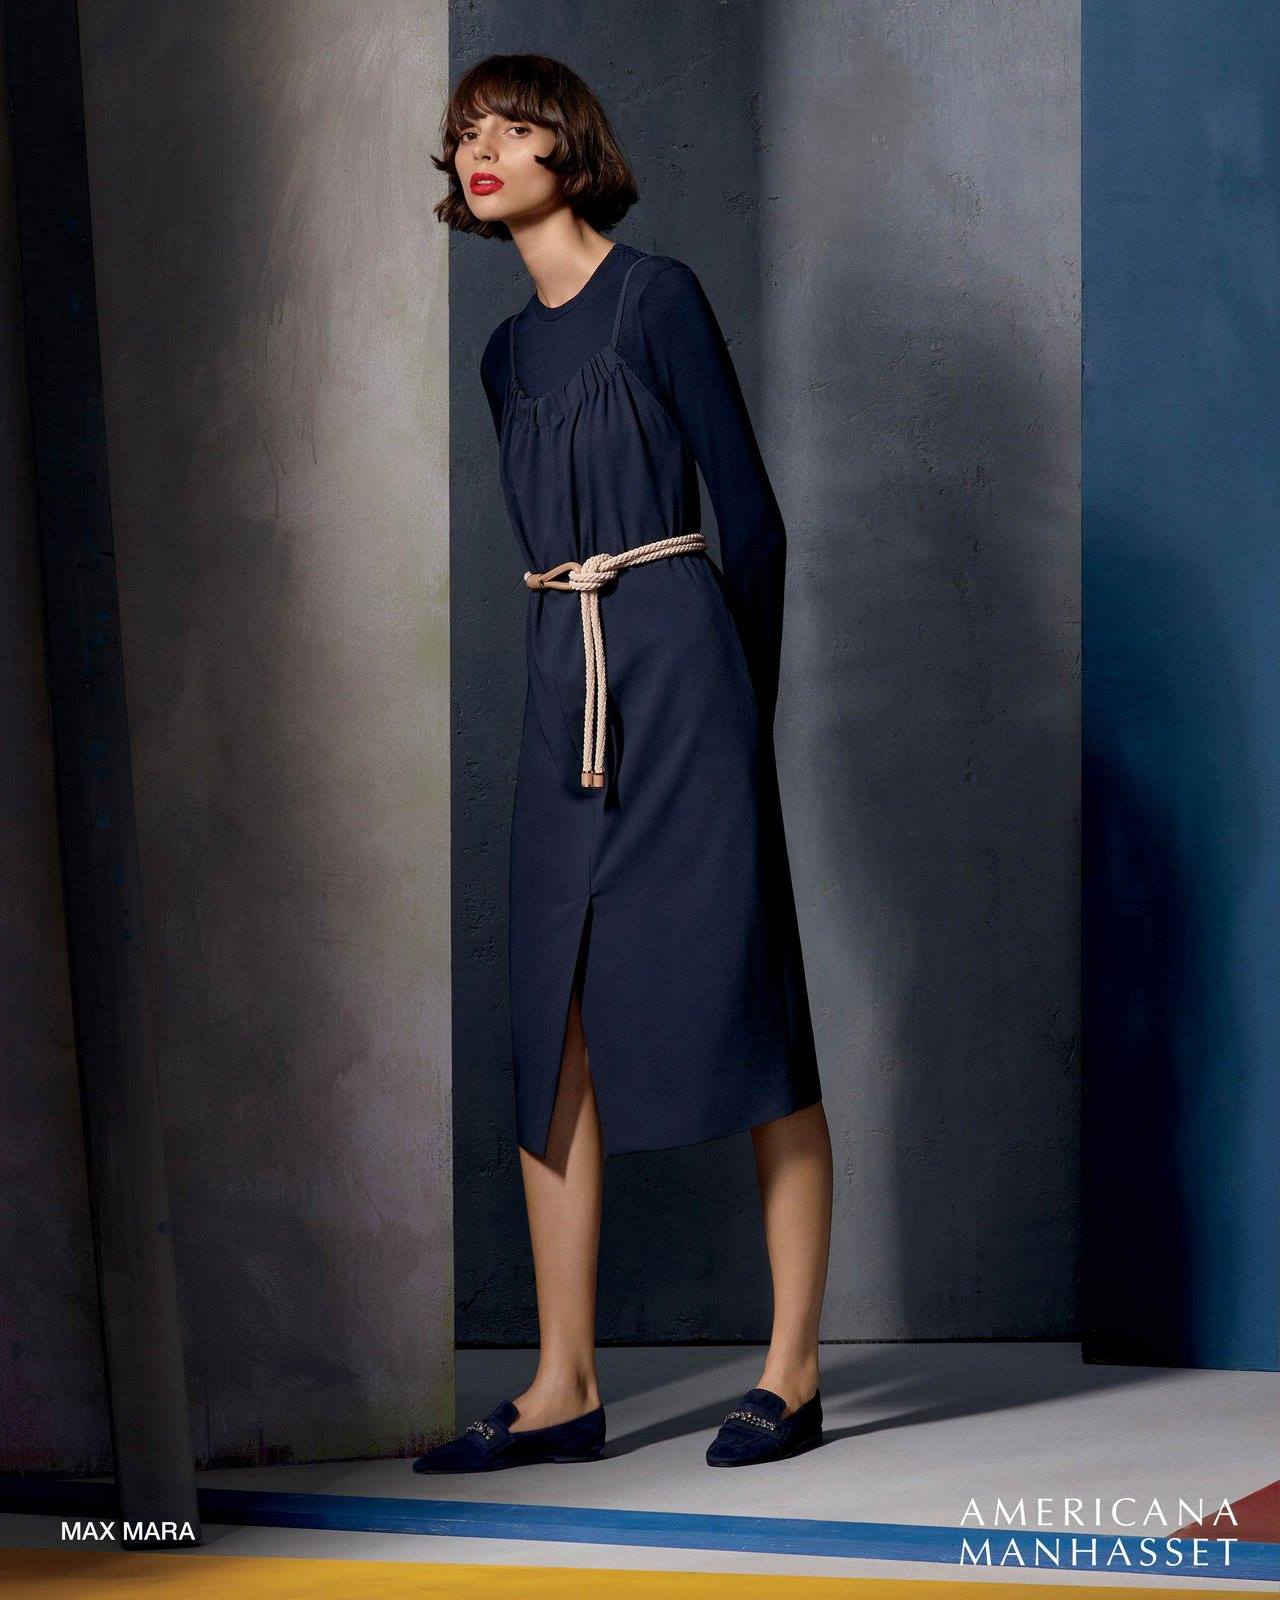 Americana Manhasset Holiday 2017 Resort Campaign